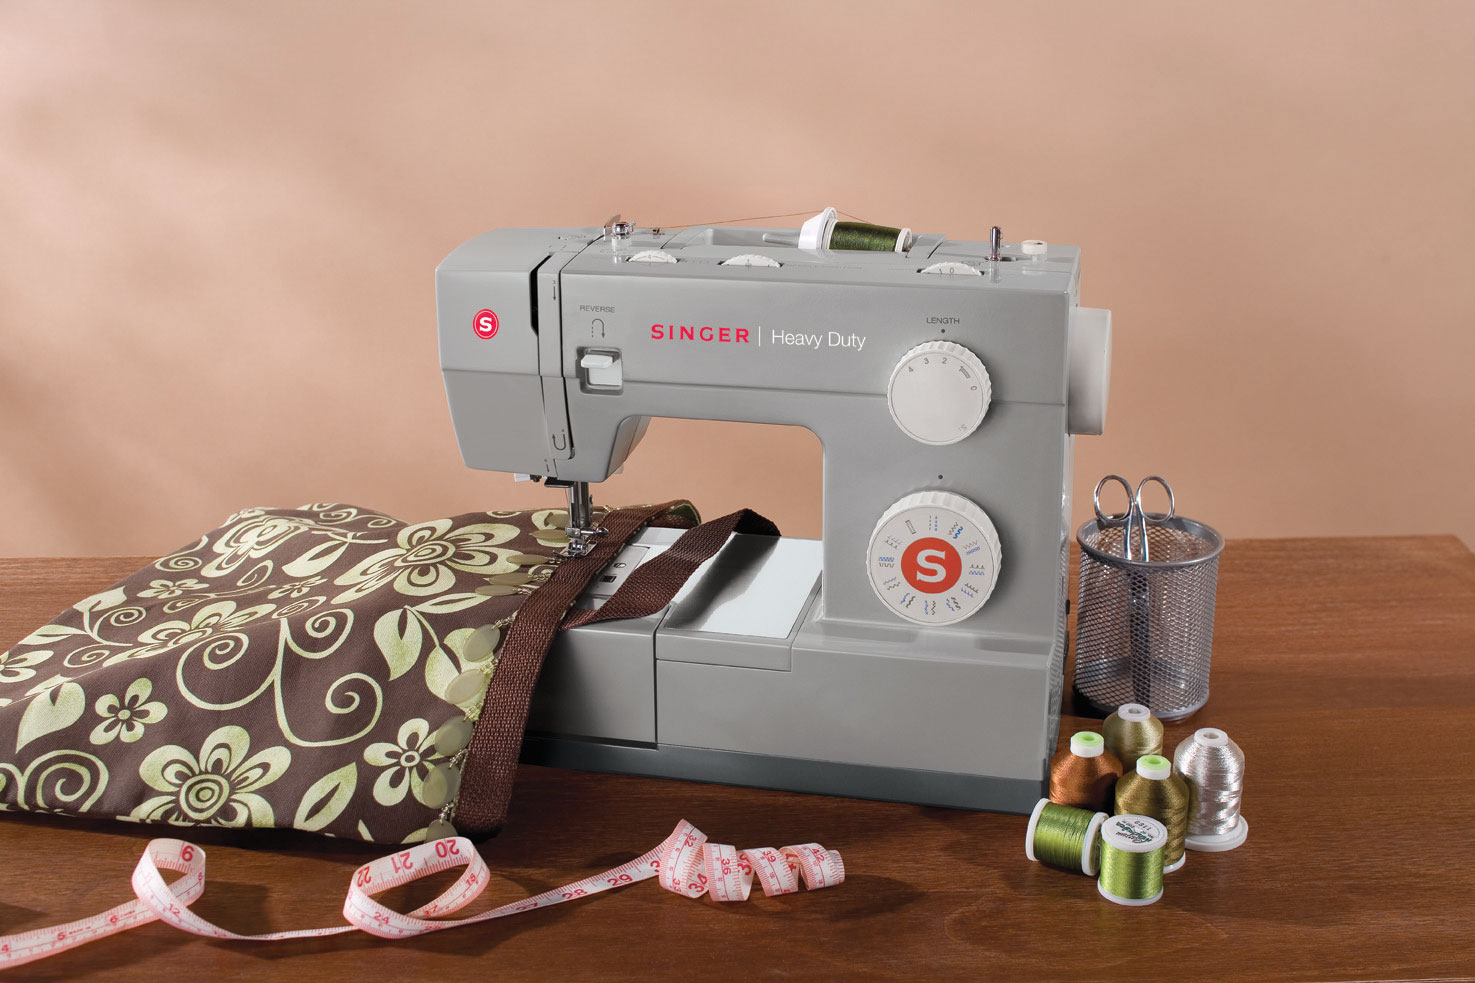 Singer 4423 Lifestyle Sewing Machine.